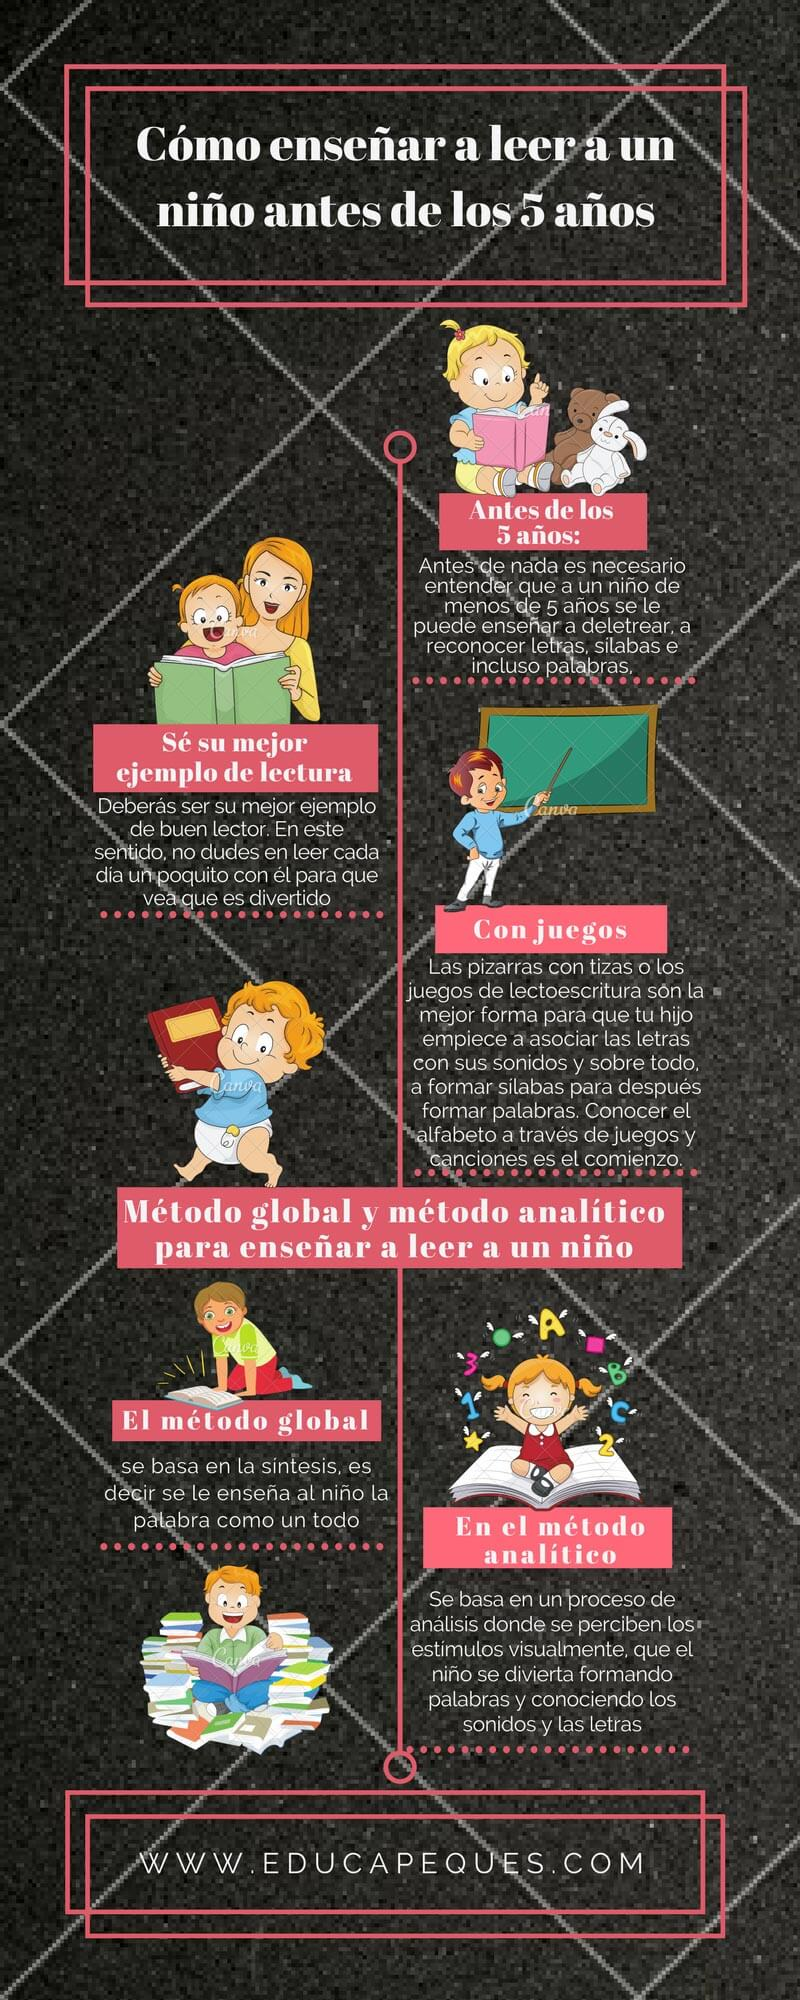 Imagenes educativas